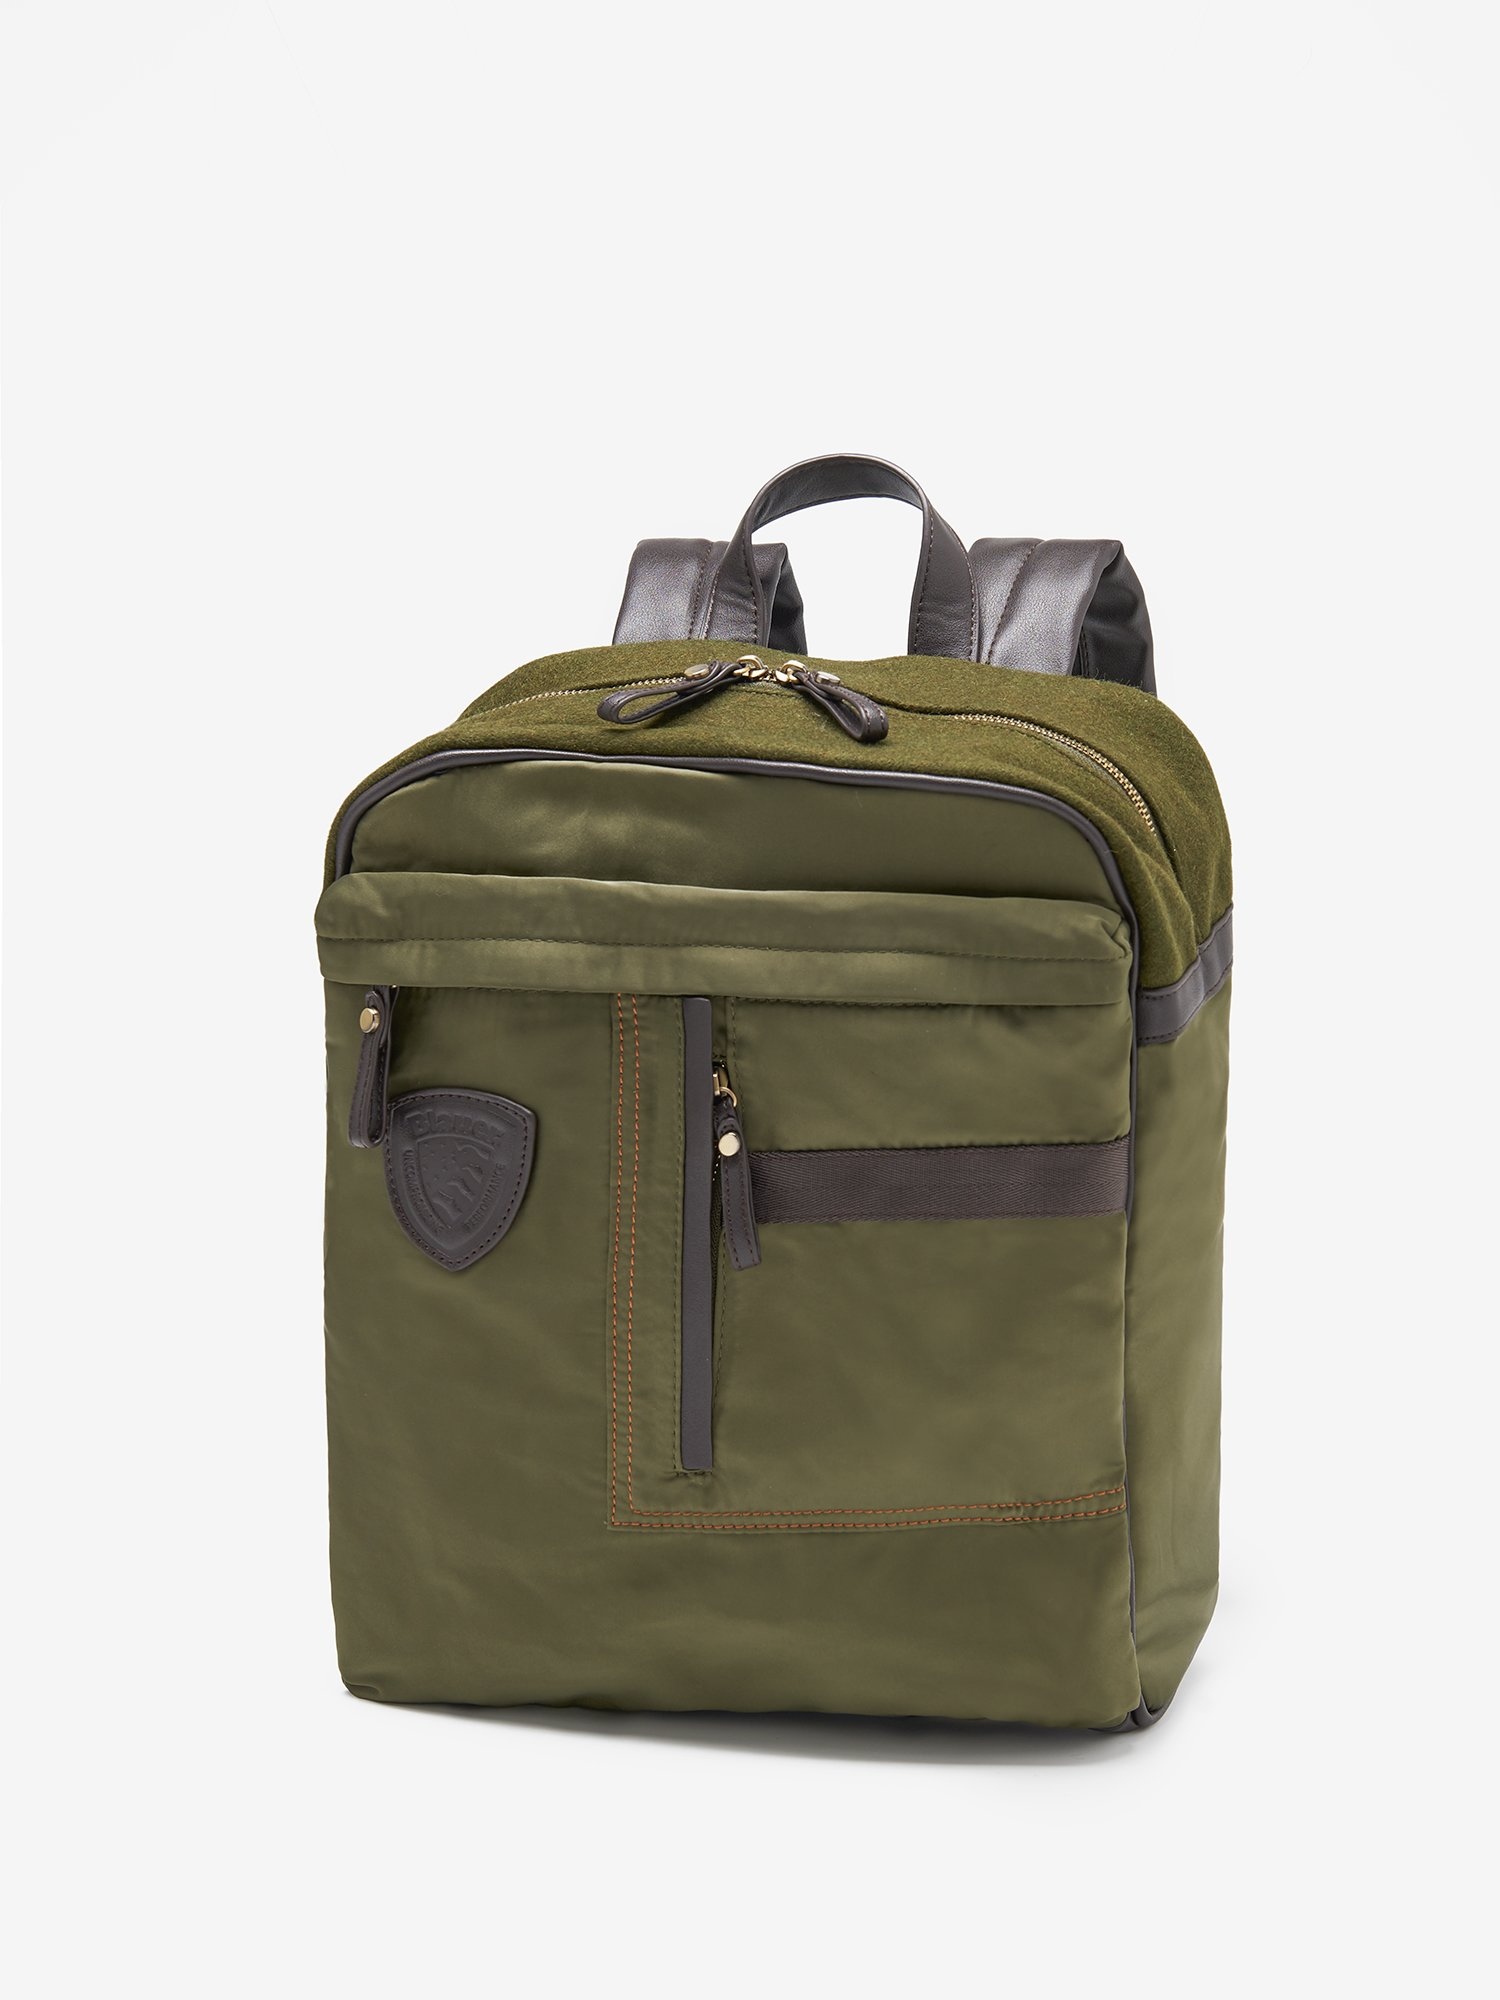 Blauer - FELTY BACKPACK WITH FELT DETAIL - Military Green - Blauer